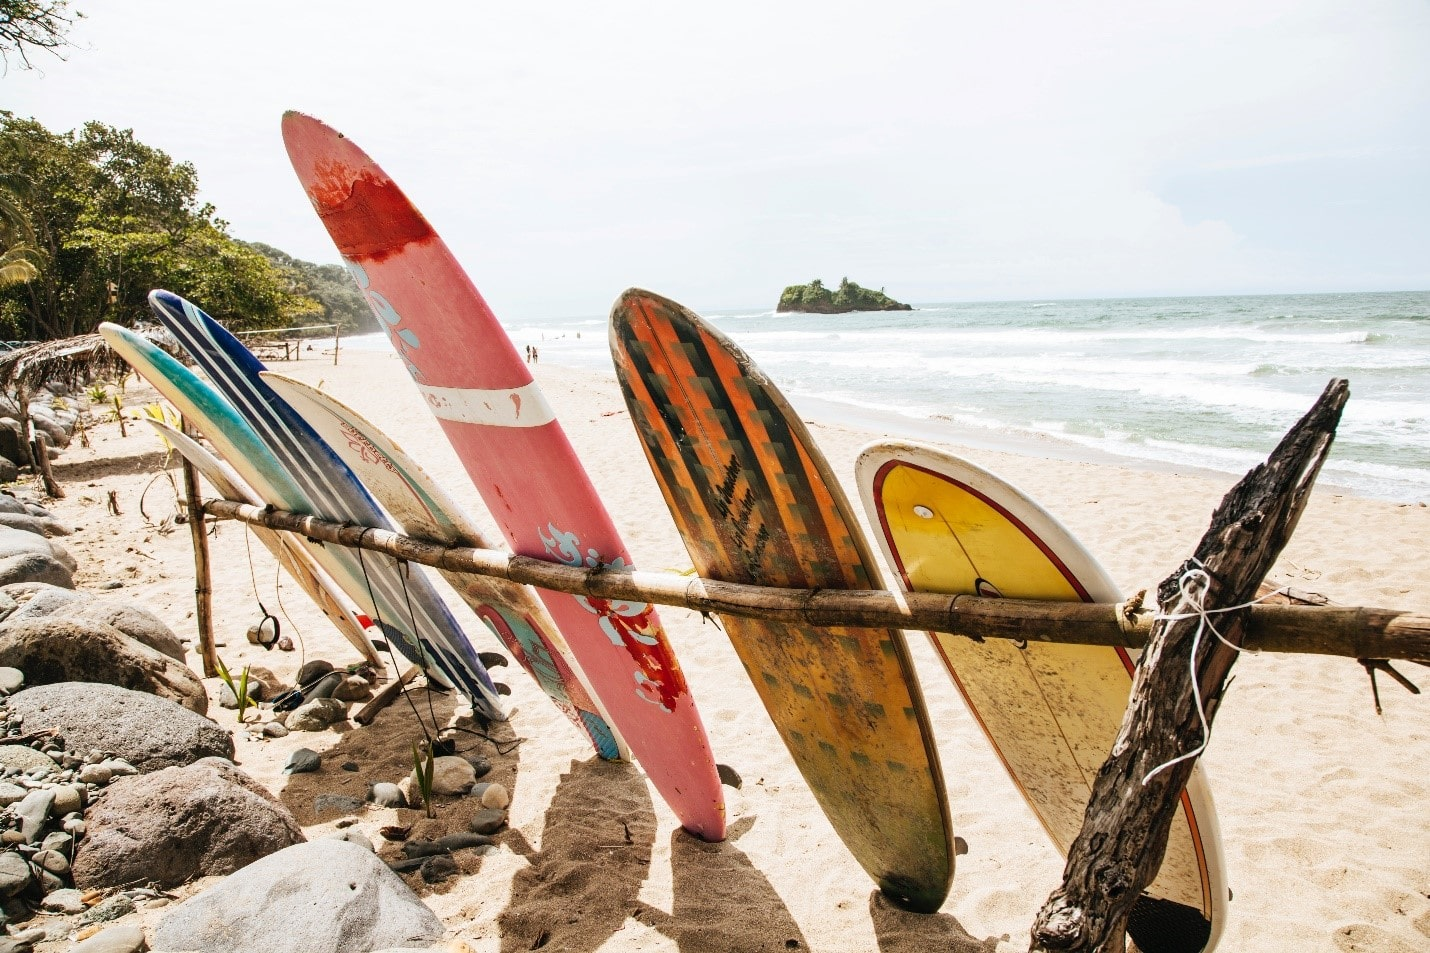 South Caribbean surf boards